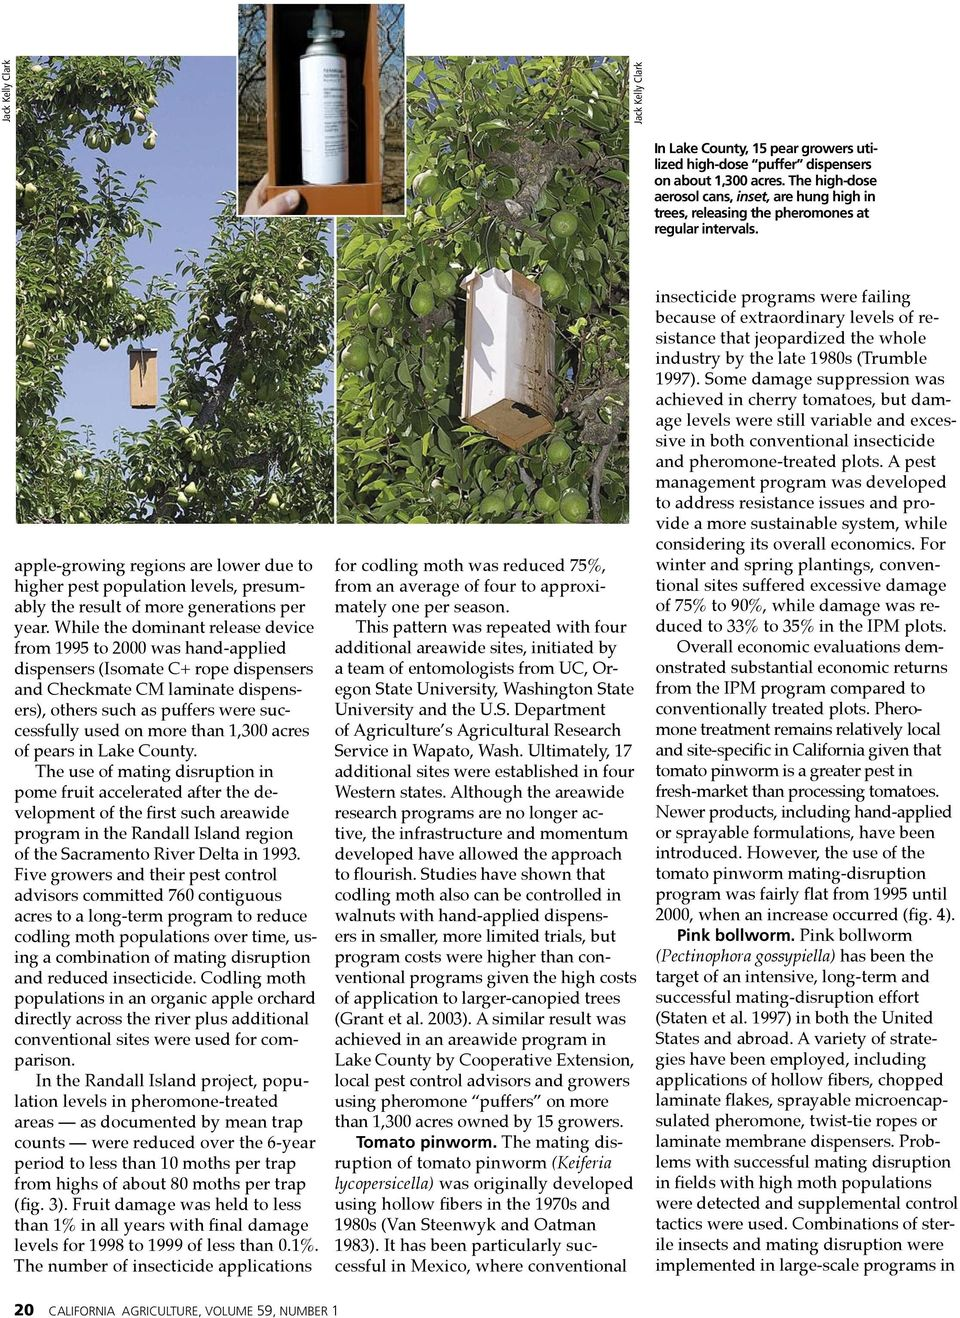 apple-growing regions are lower due to higher pest population levels, presumably the result of more generations per year.